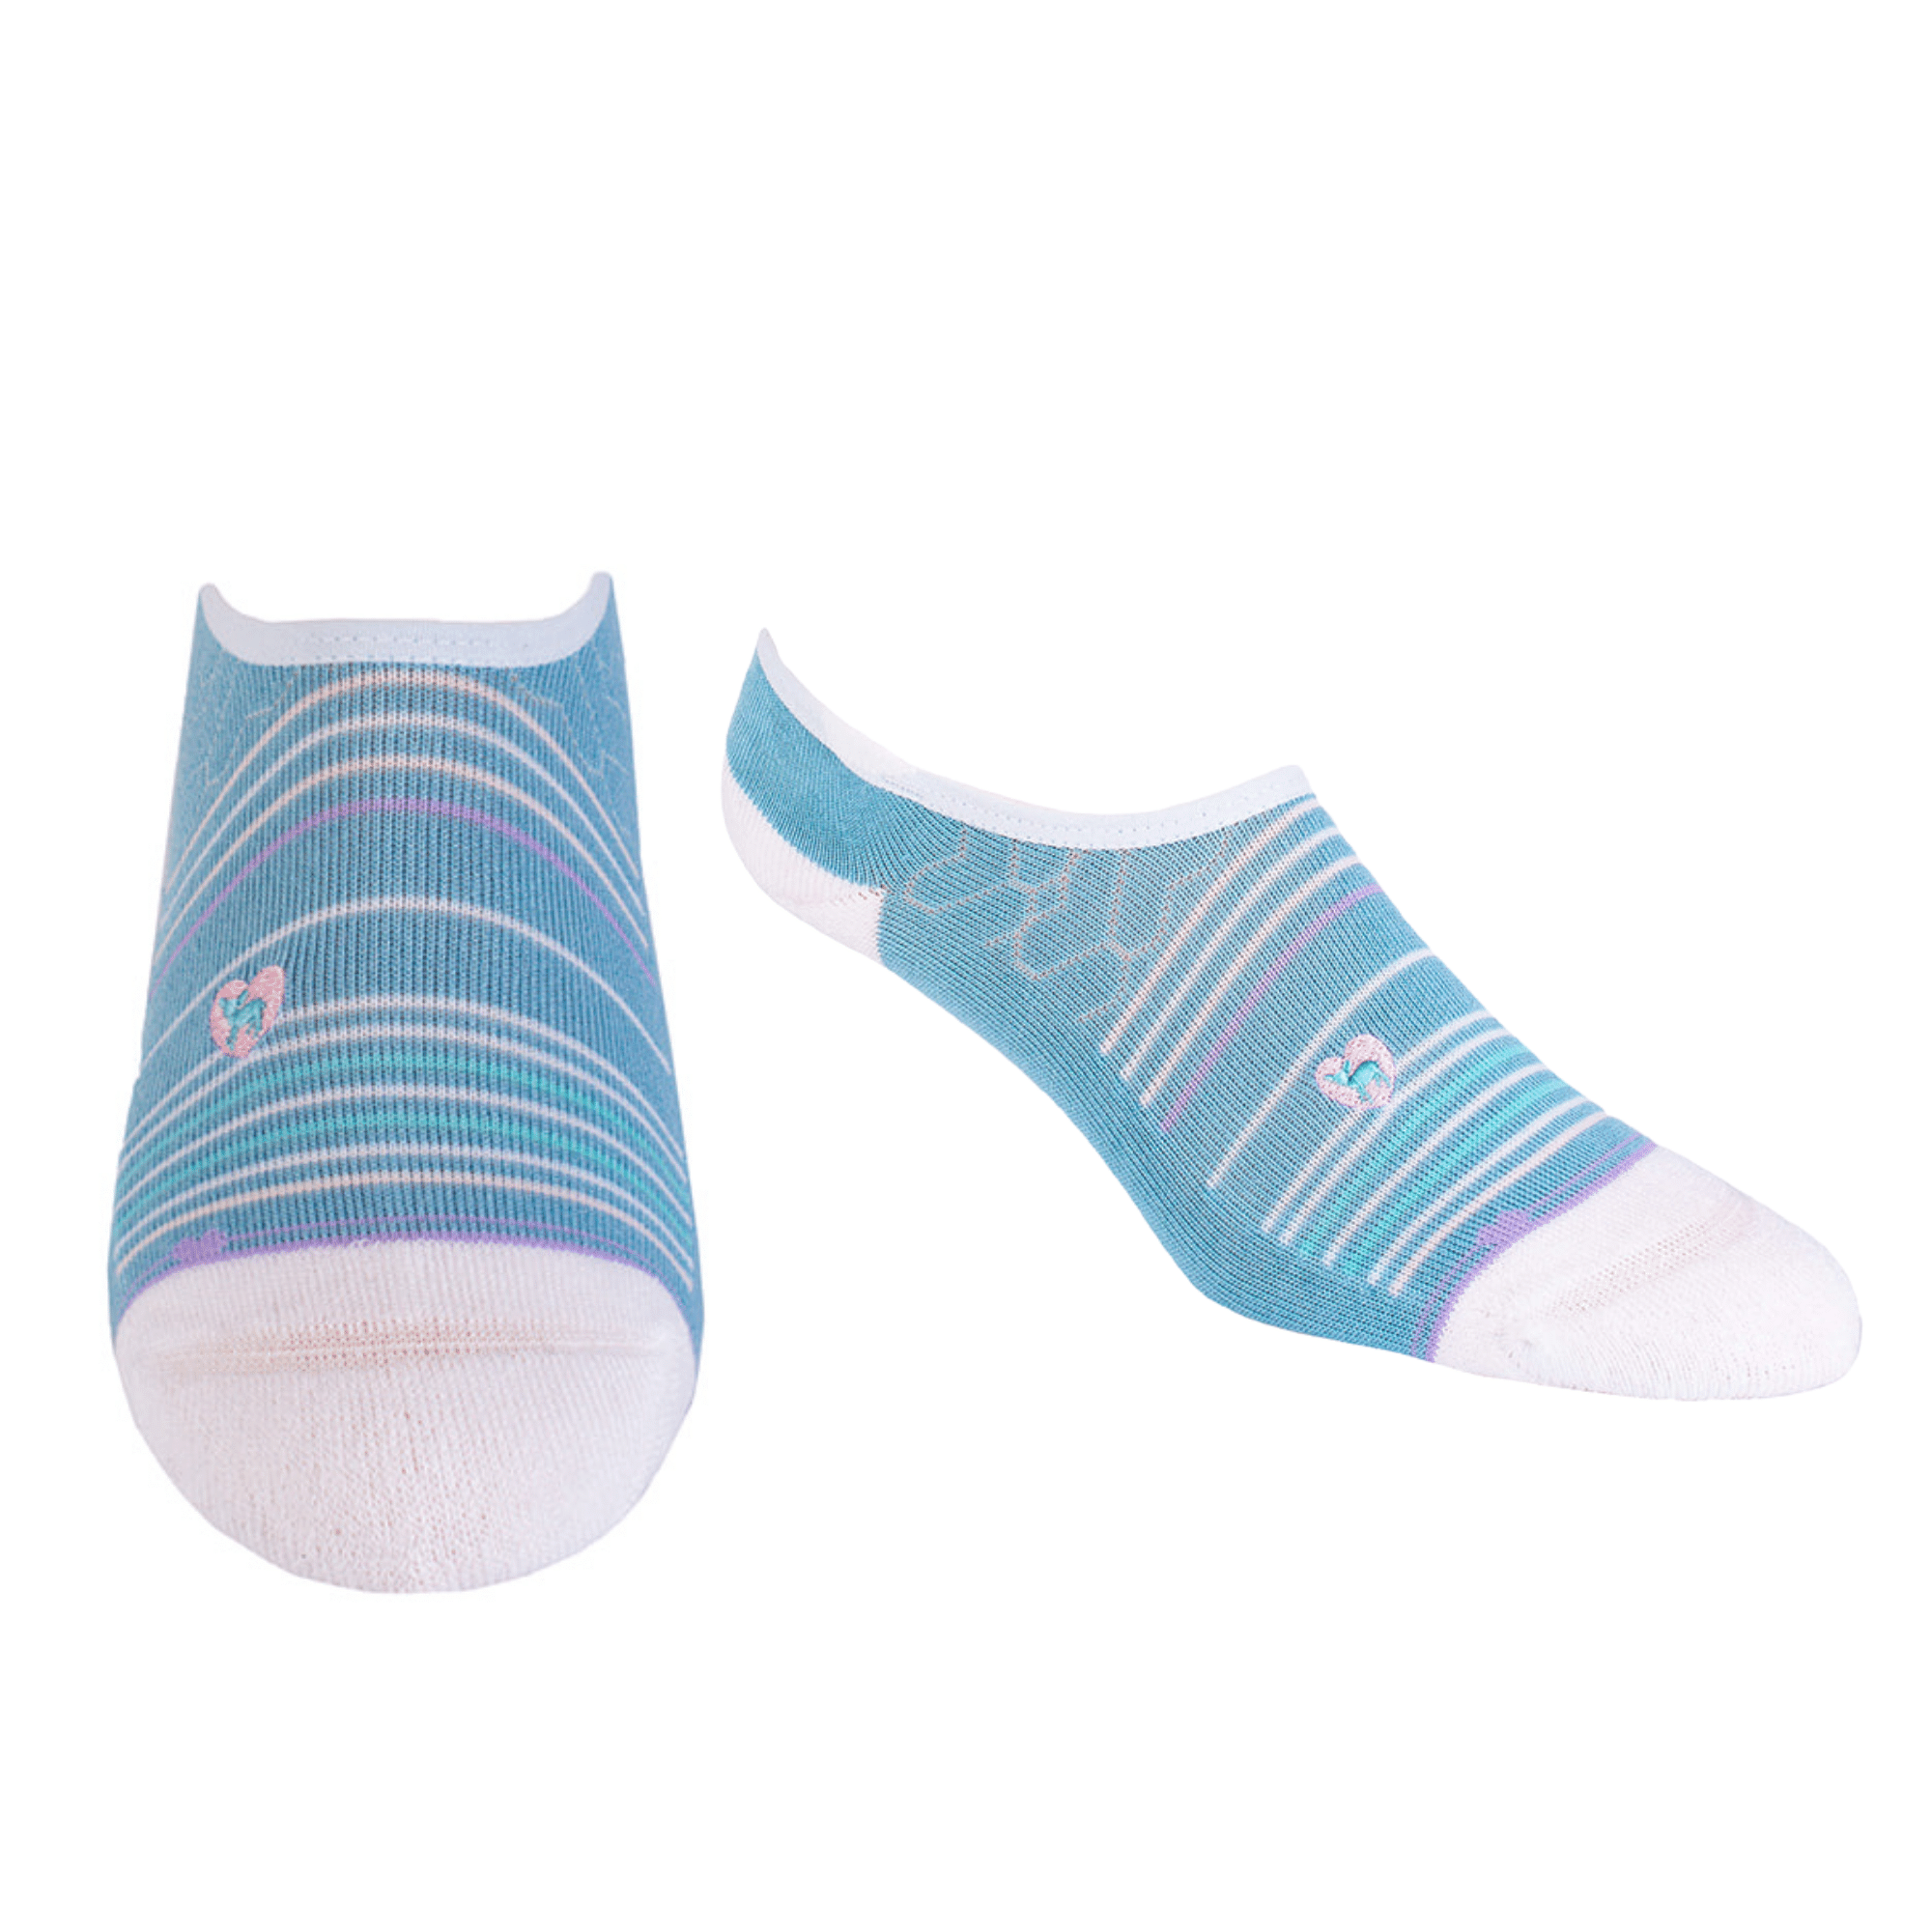 Bamboo Socks | No Fuss No-Show | Seaside Blue